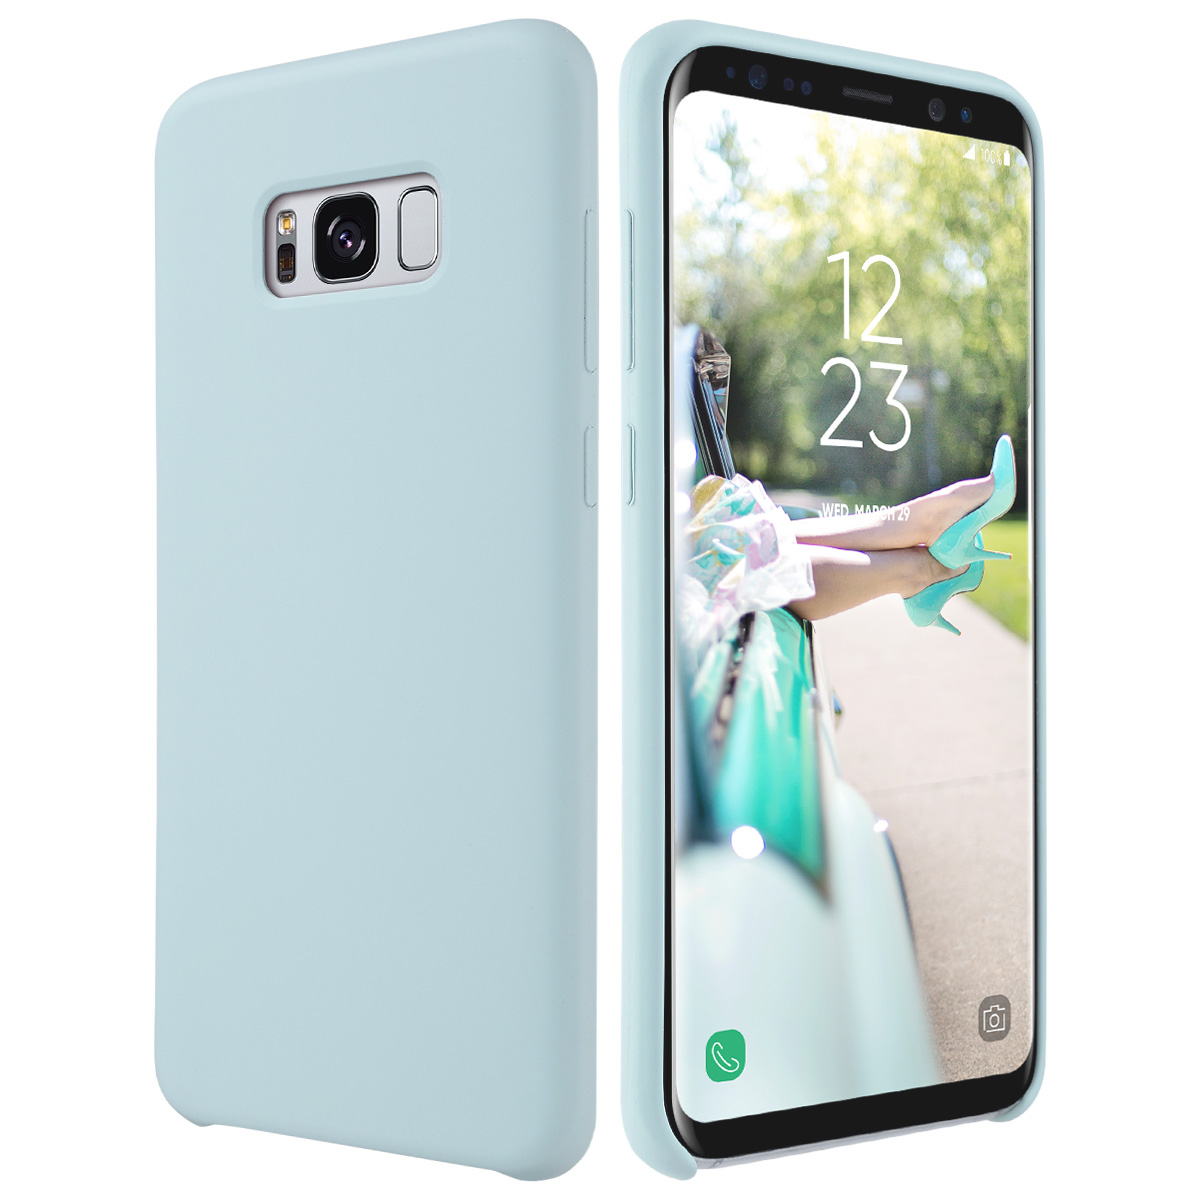 Galaxy S8 Case, ULAK [Silicone Slim] - [Shock Absorbing] Liquid Silicone Gel Rubber Shockproof Case Cover with Soft Microfiber Cloth Lining Cushion for Samsung Galaxy S8 2017 Release